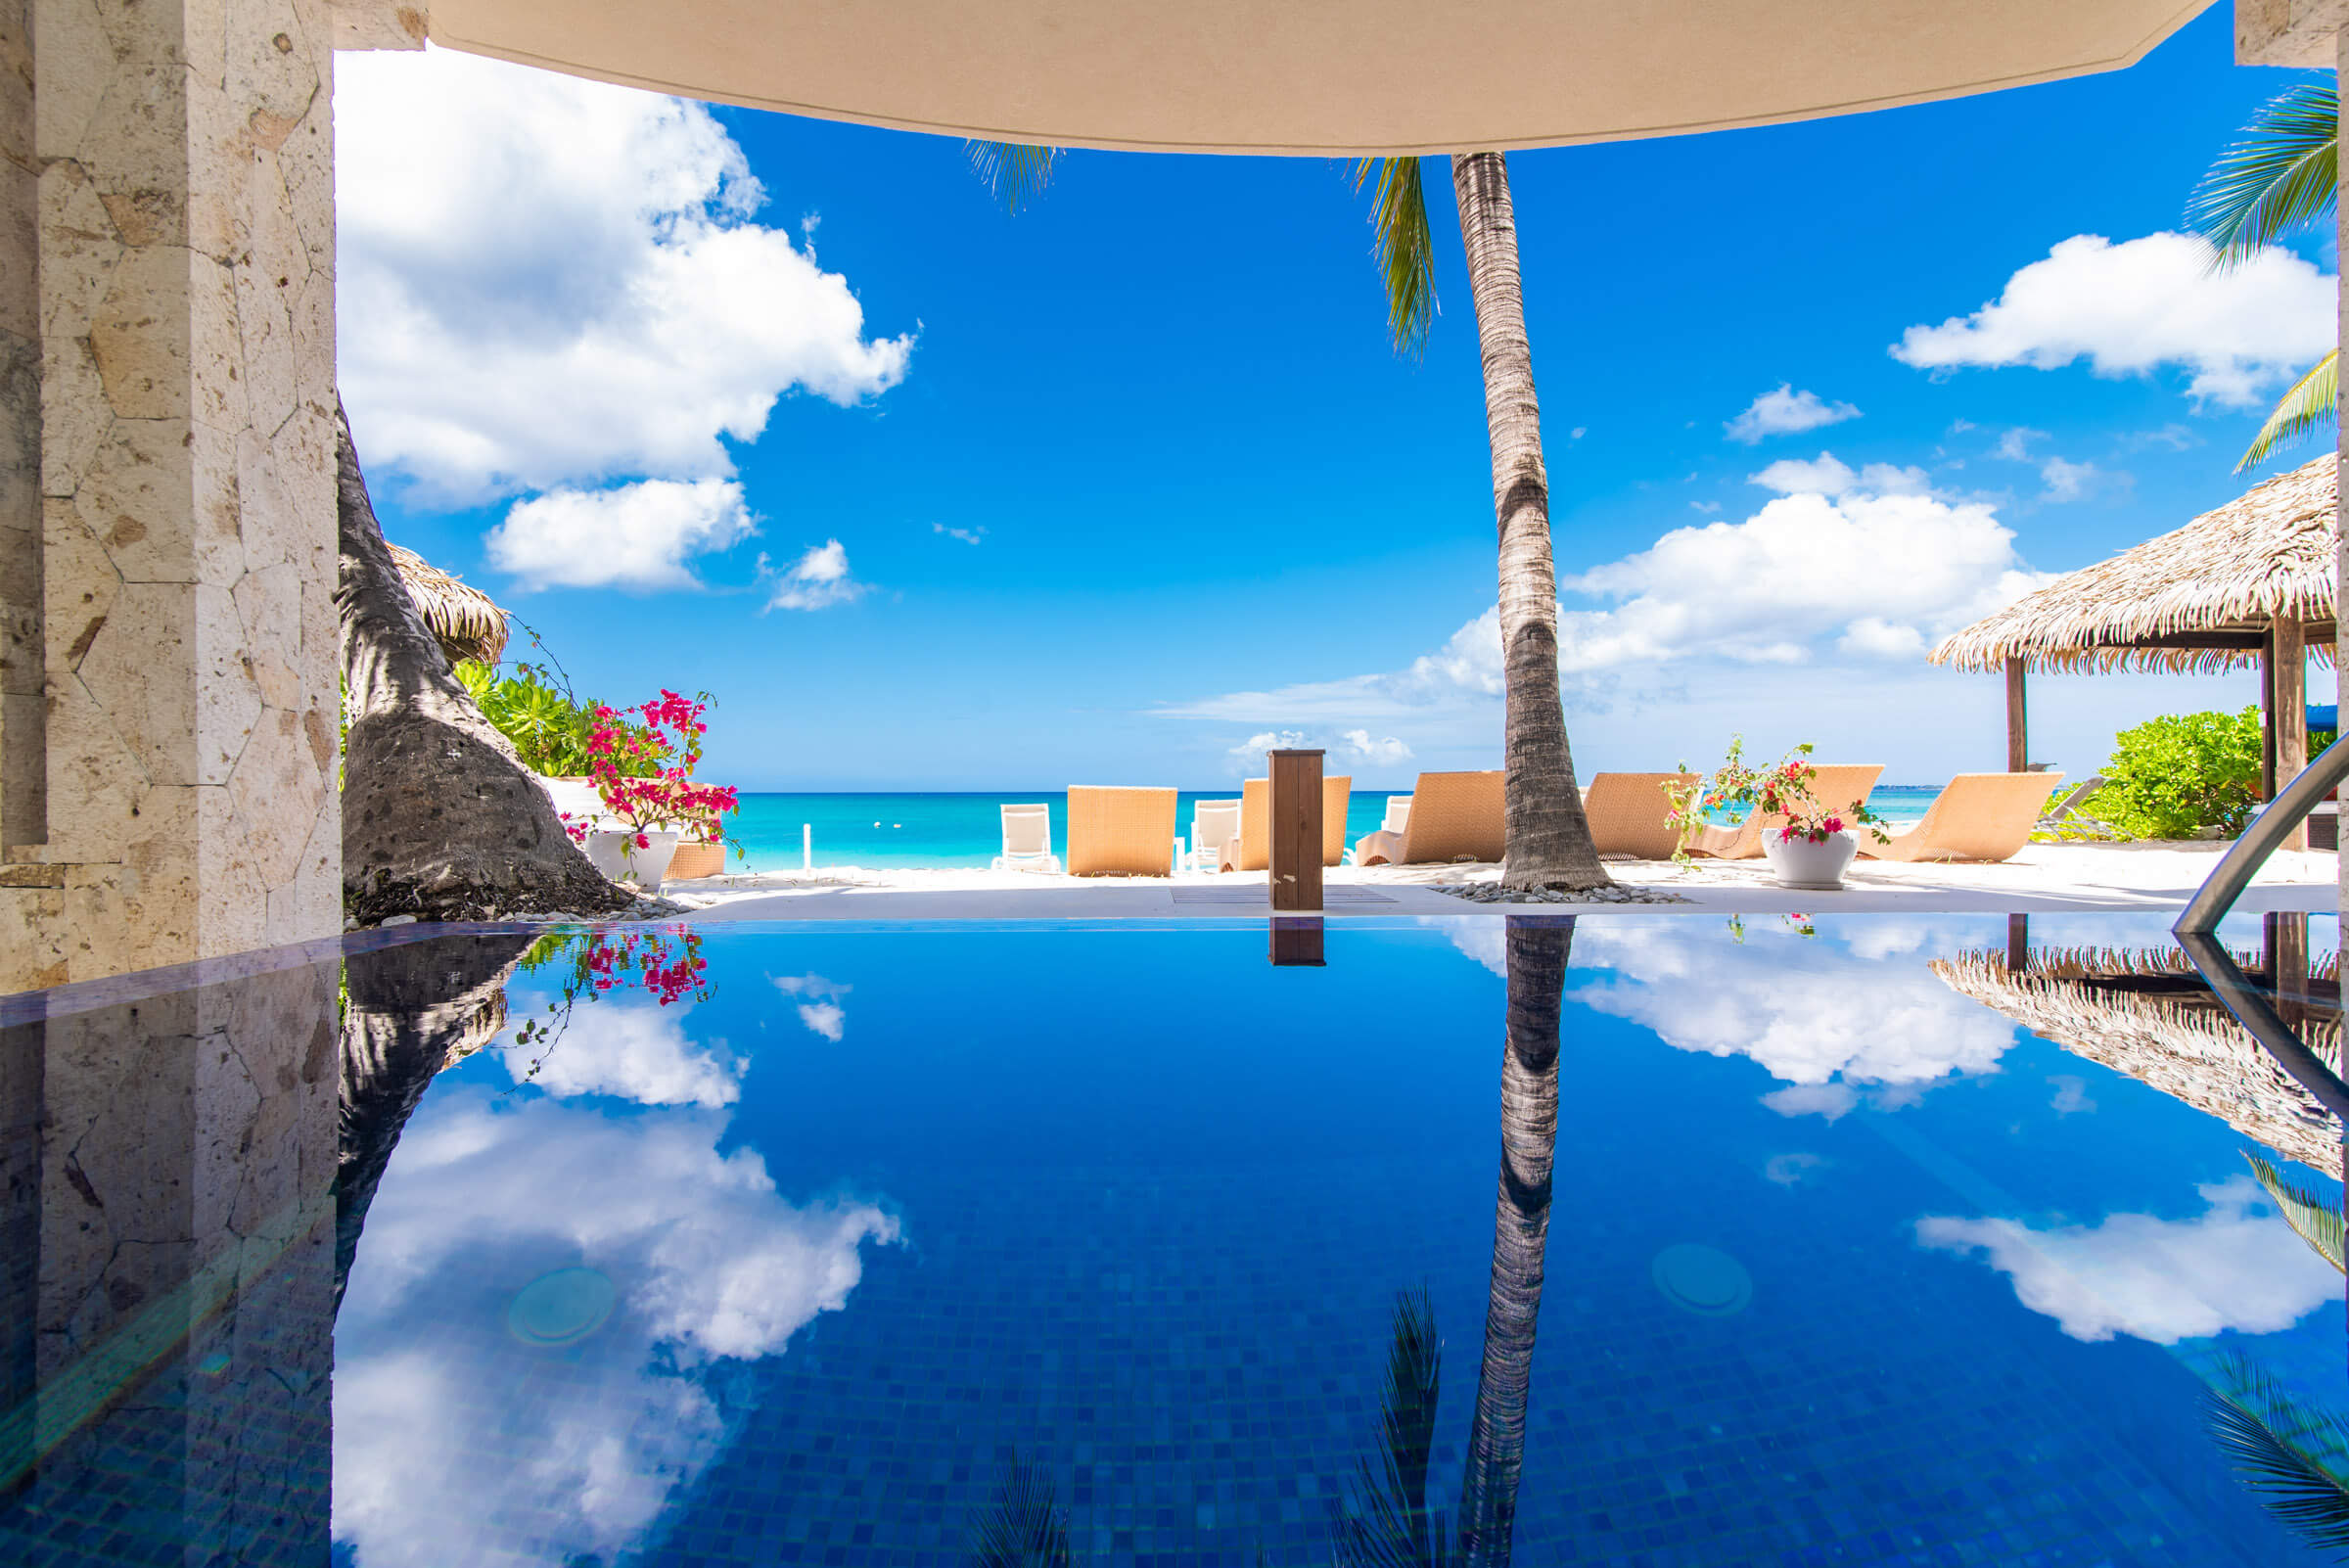 Seascape Villa Cayman Islands Grand Cayman Beachfront Luxury Caribbean Vacation Family Games, Activities and Pool